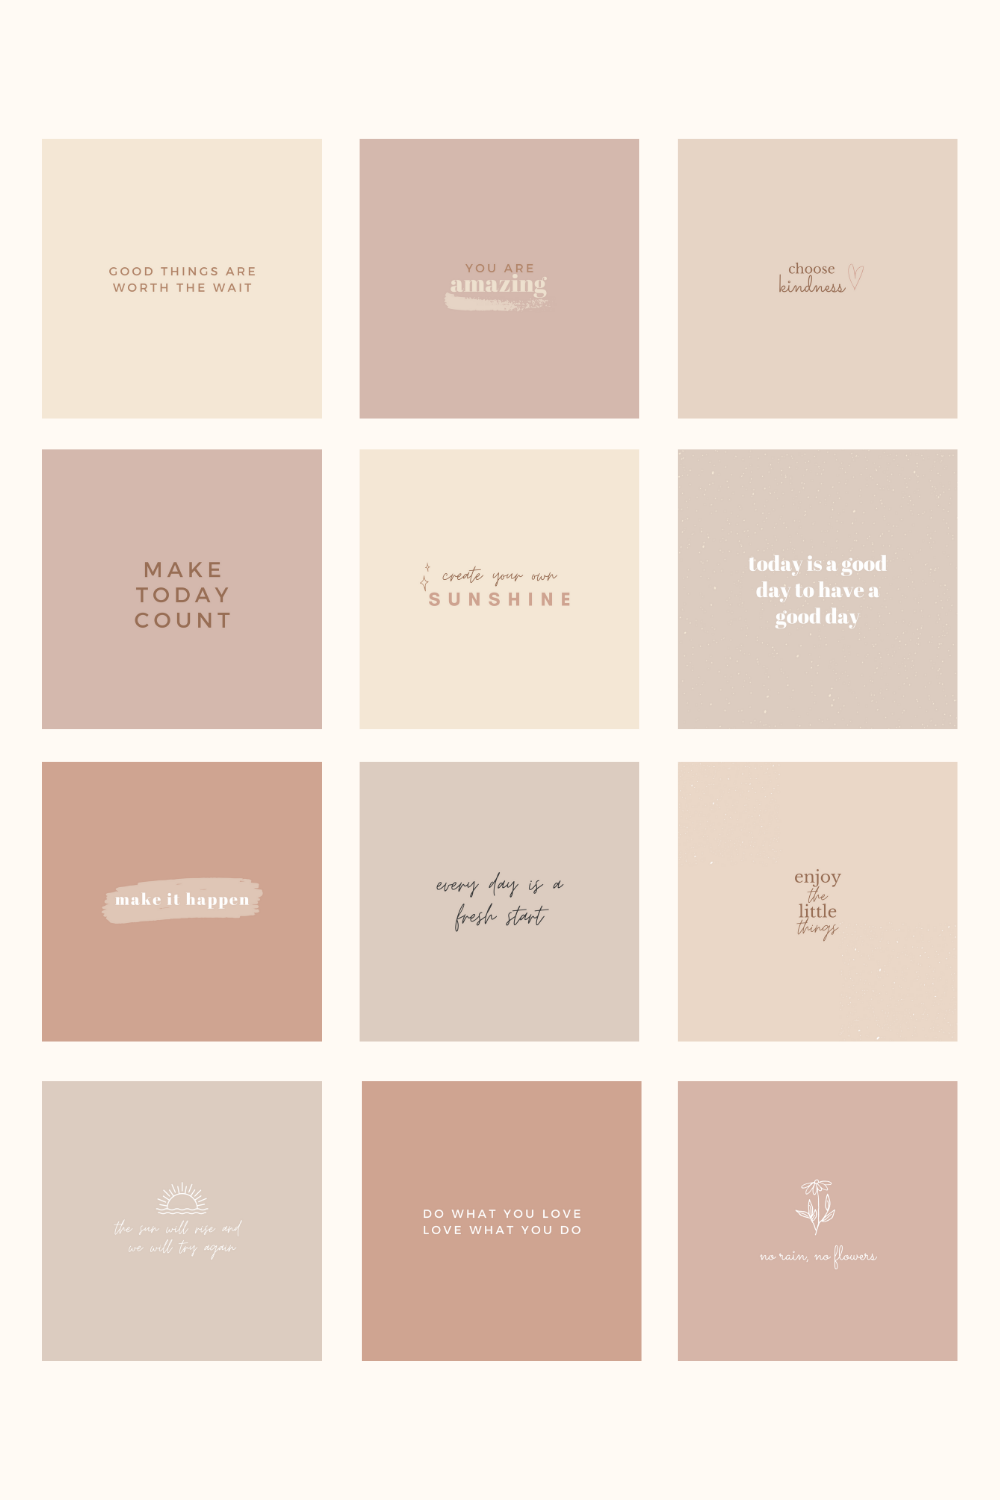 Instagram Post Quotes Templates - Motivational Quotes in Boho, Soft Neutral Colors, Branding Kit